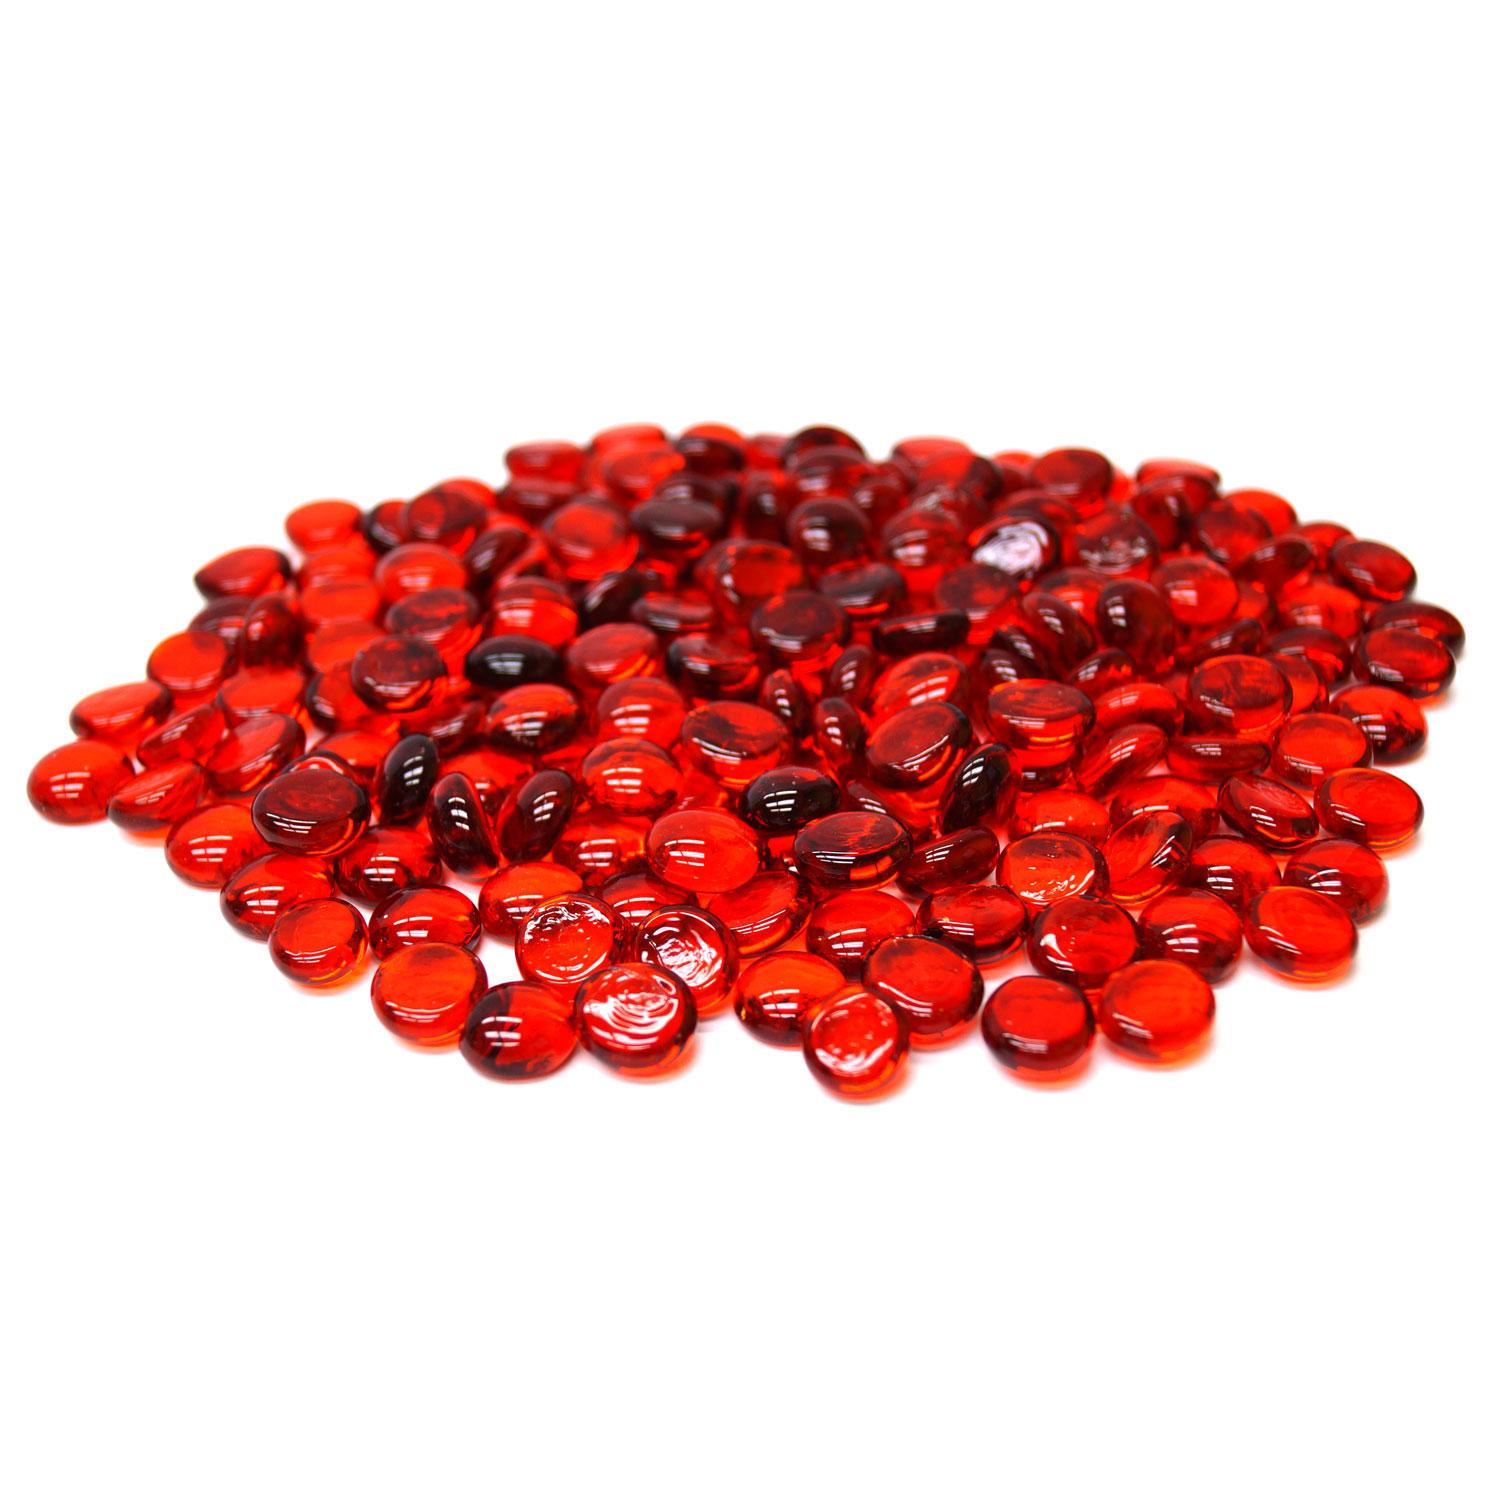 Small Red Transparent Nuggets - 1 Lb.